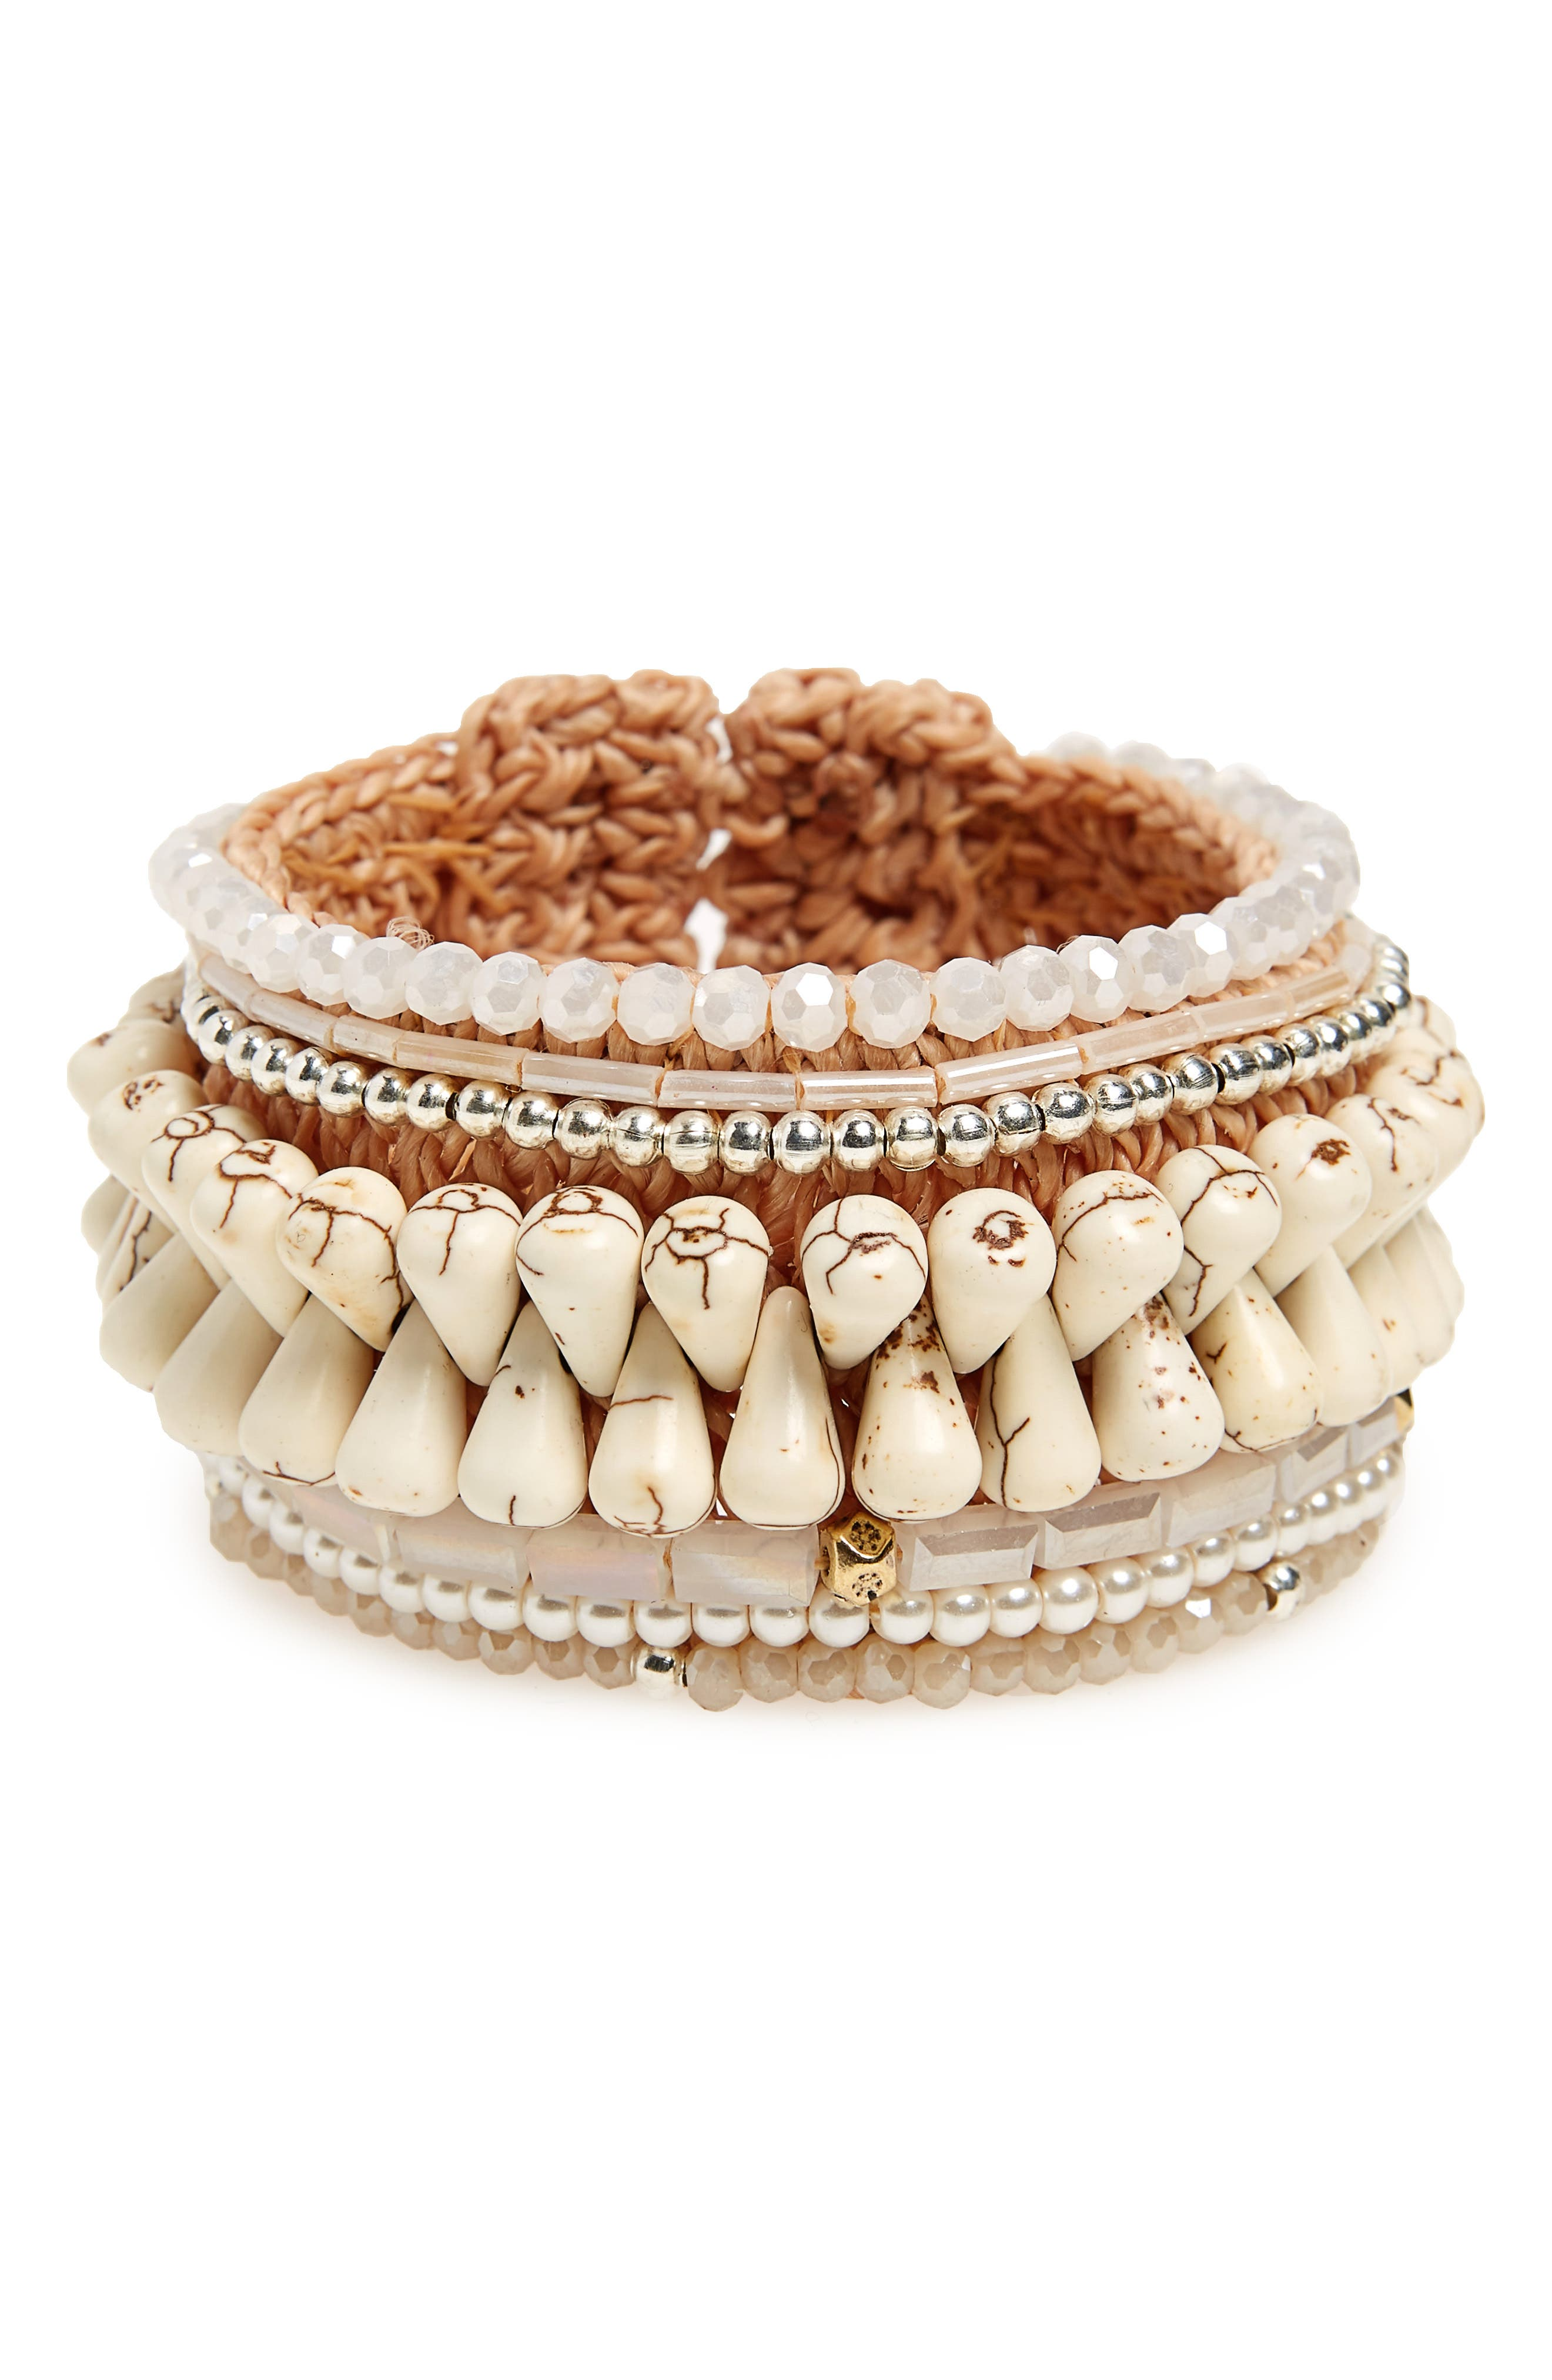 Beaded Rope Cuff Bracelet,                         Main,                         color, White